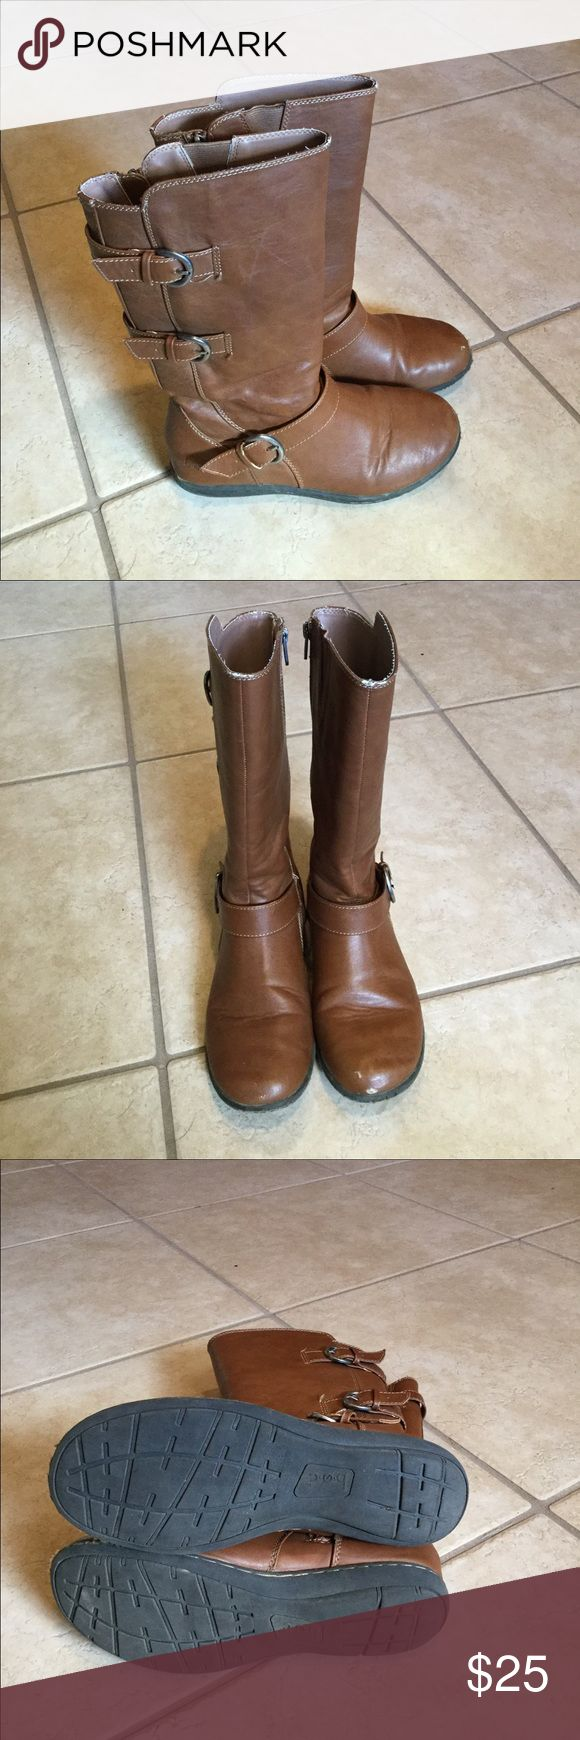 Girls Annette Boots As Cute As They Are Comfy, these b.o.c. Girls Brown Synthetic Boots Show slight signs of wear but are in overall great condition. See photo for slight toe scuffing. Look great with skirts, school uniforms, skinnies, etc! b.o.c. Shoes